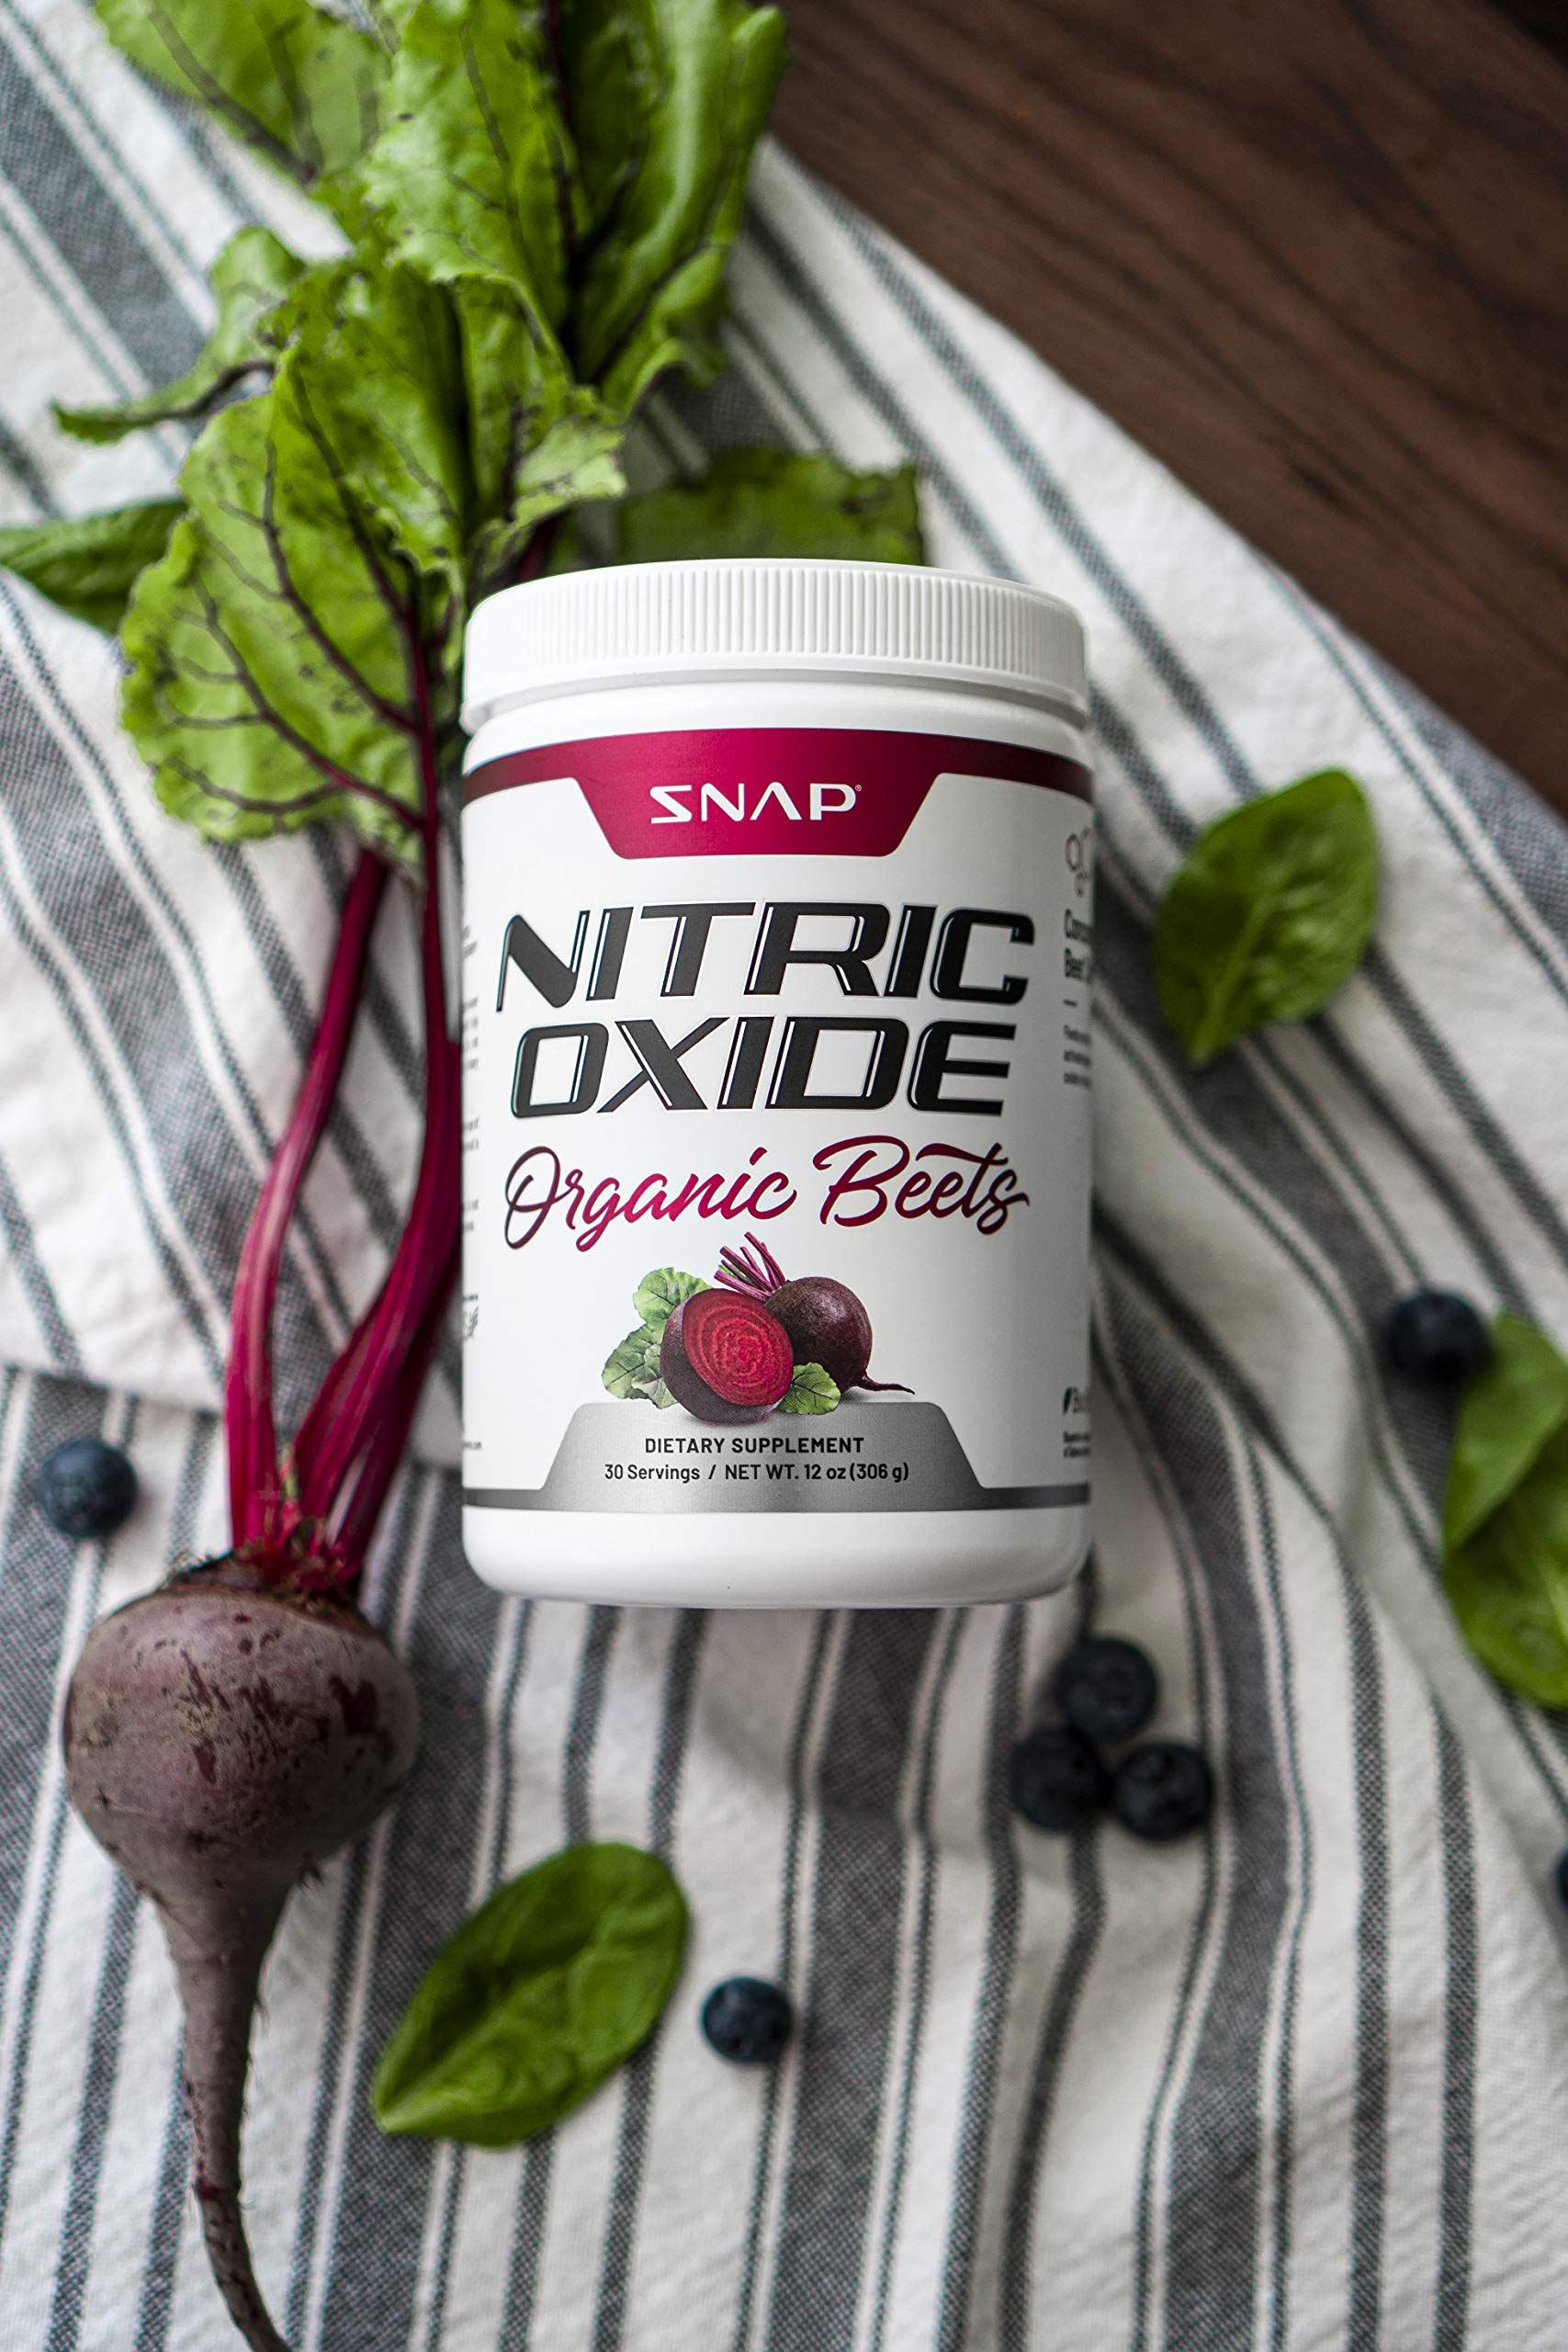 Beet Juice Powder (Organic) Nitric Oxide by Snap Supplements - Blood Flow and Circulation Superfood, Muscle & Heart Health - BCAAs. L Arginine, L Citrulline - 306 Grams! by Snap Supplements (Image #5)